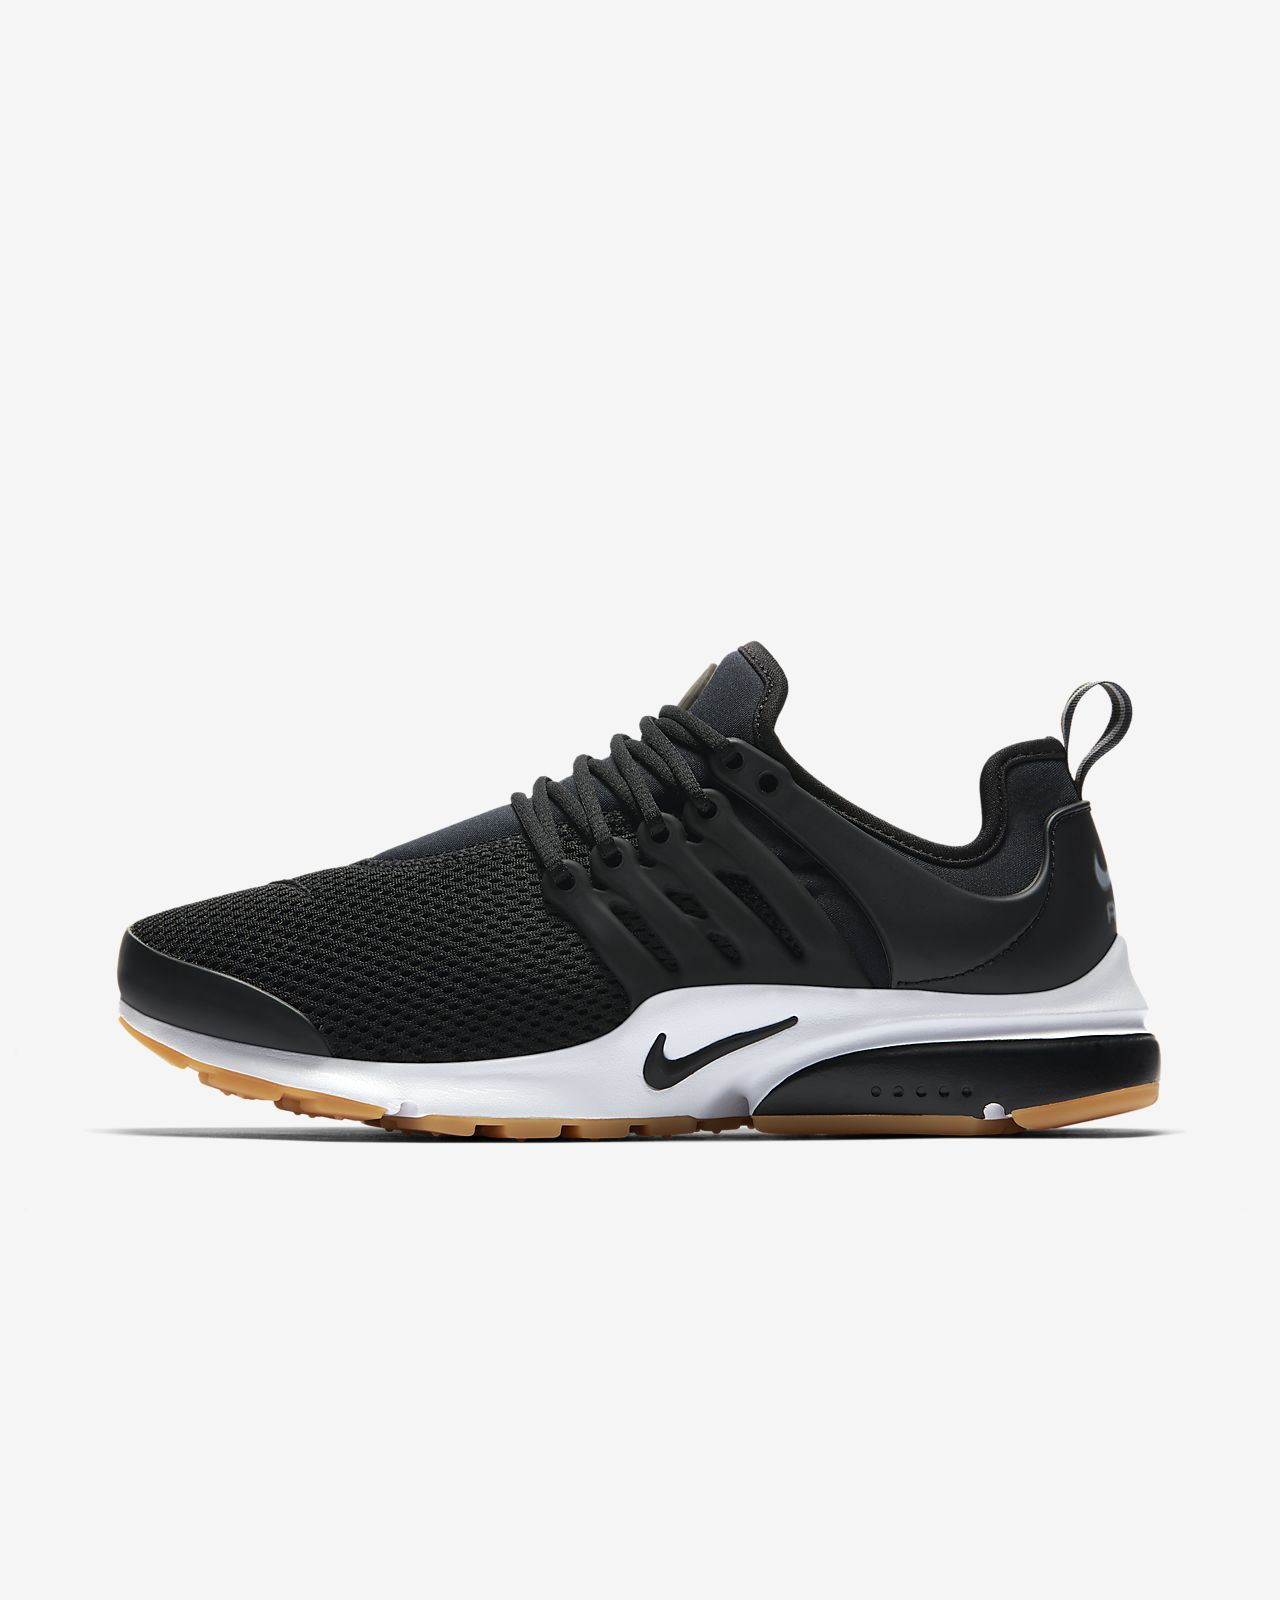 watch 58935 933d1 ... Nike Air Presto Women s Shoe